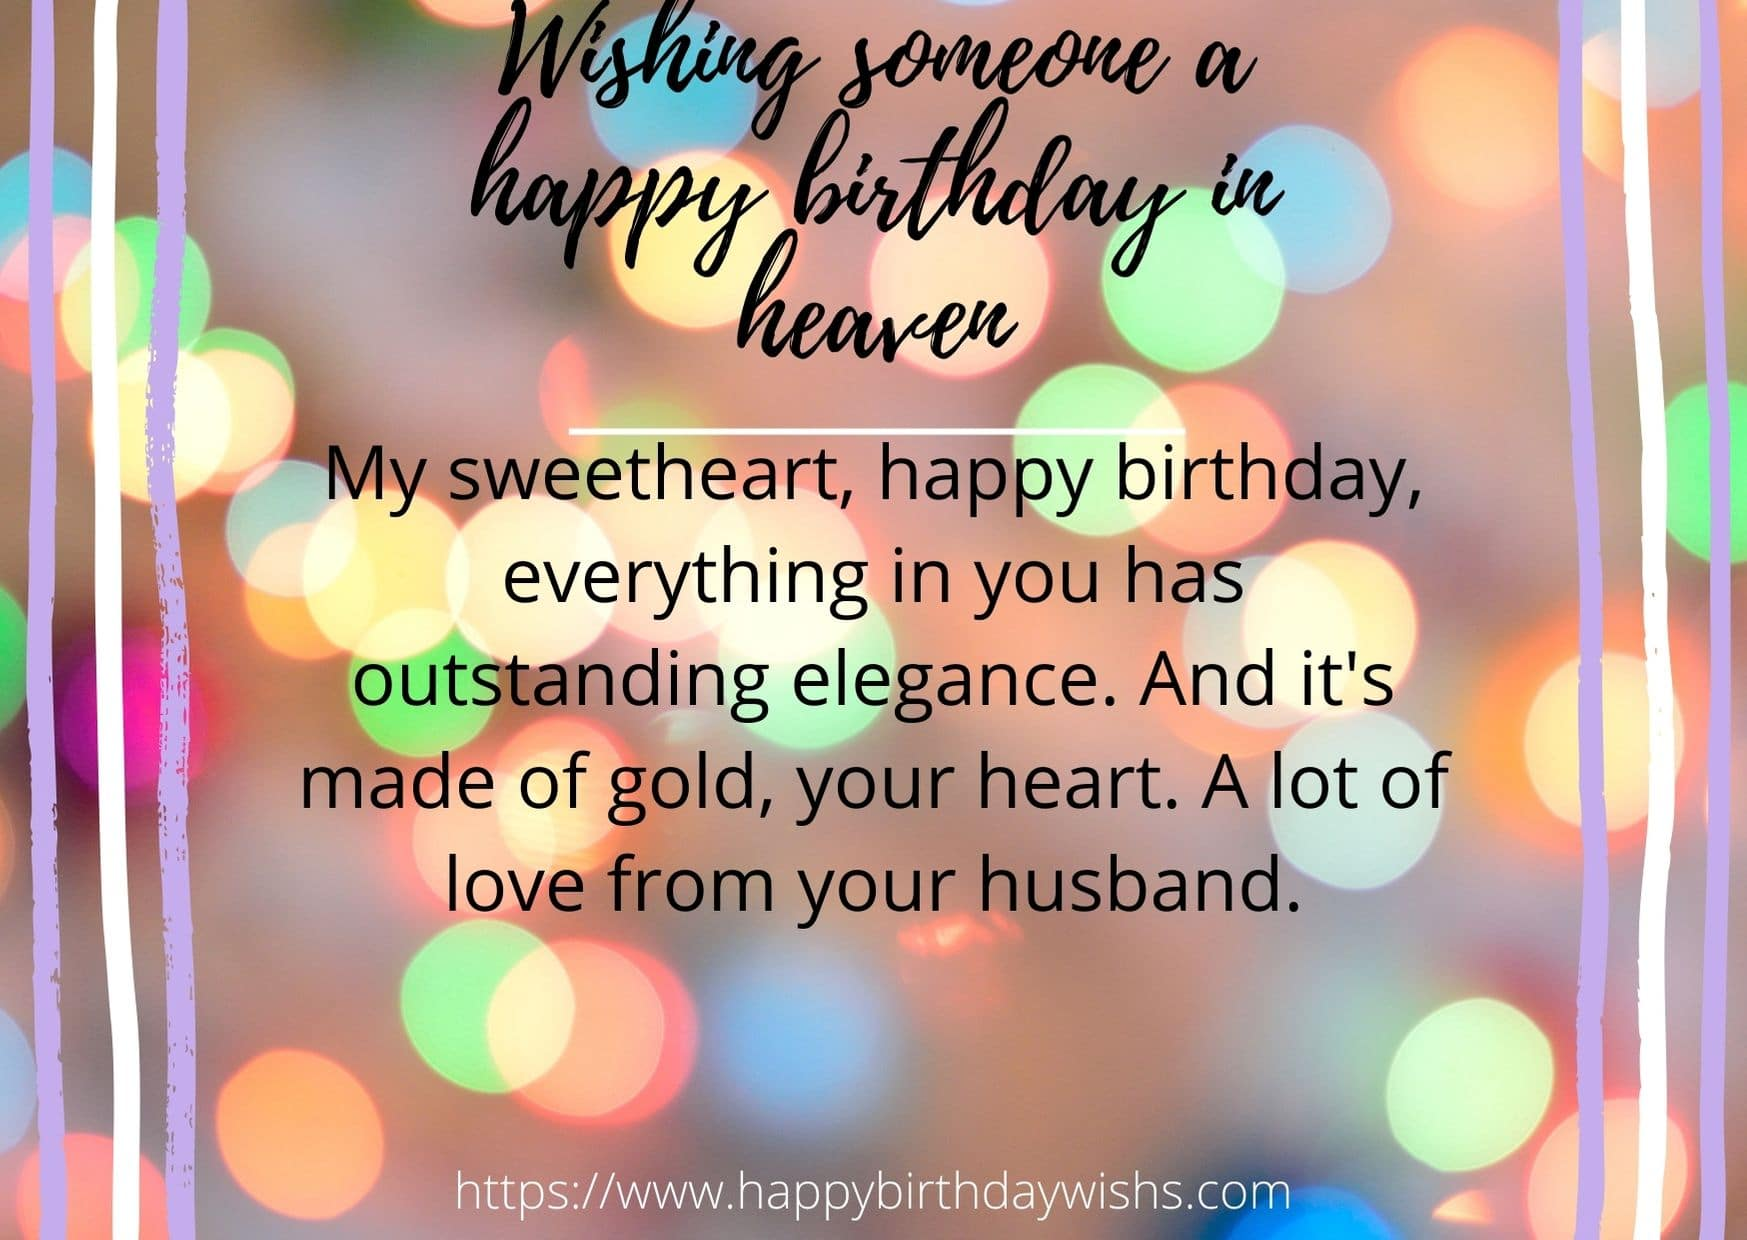 100 Birthday Wishes For In Heaven Wife Happy Birthday Wishes